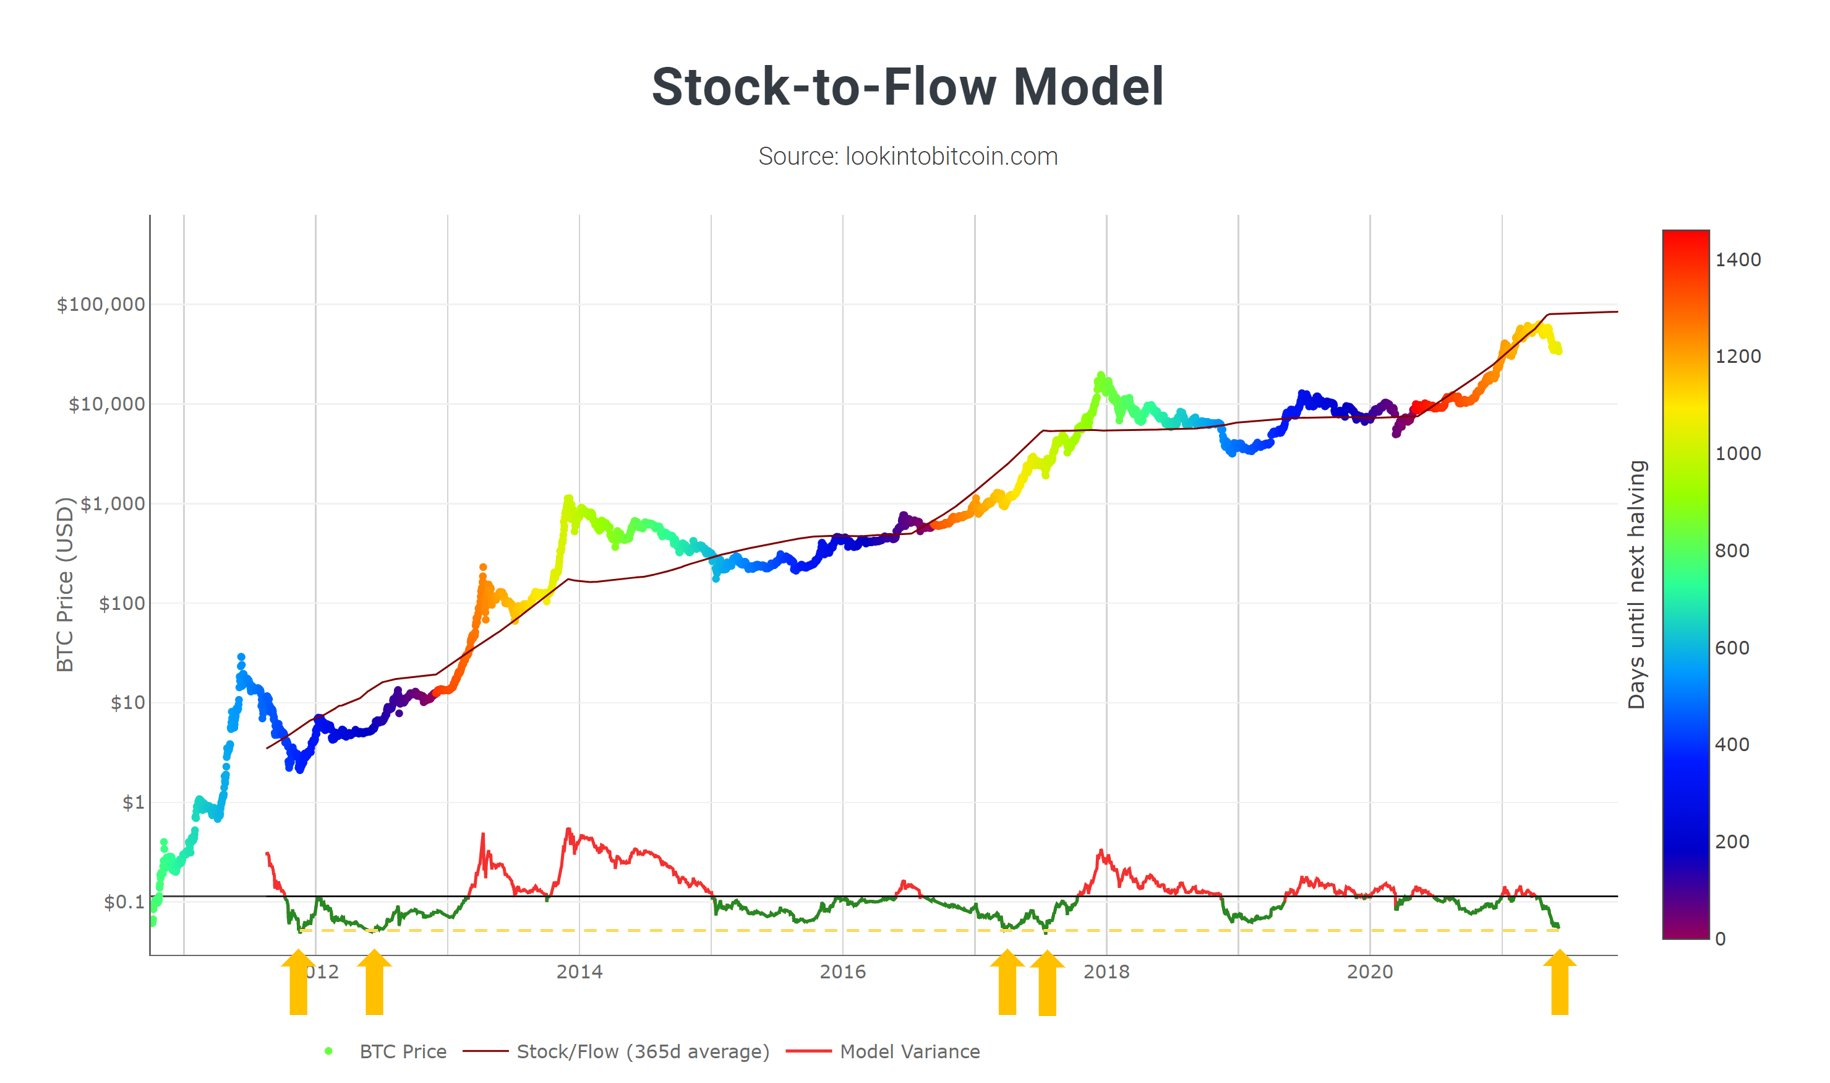 Bitcoin price hits stock-to-flow rebound level not seen since 2017 all-time high